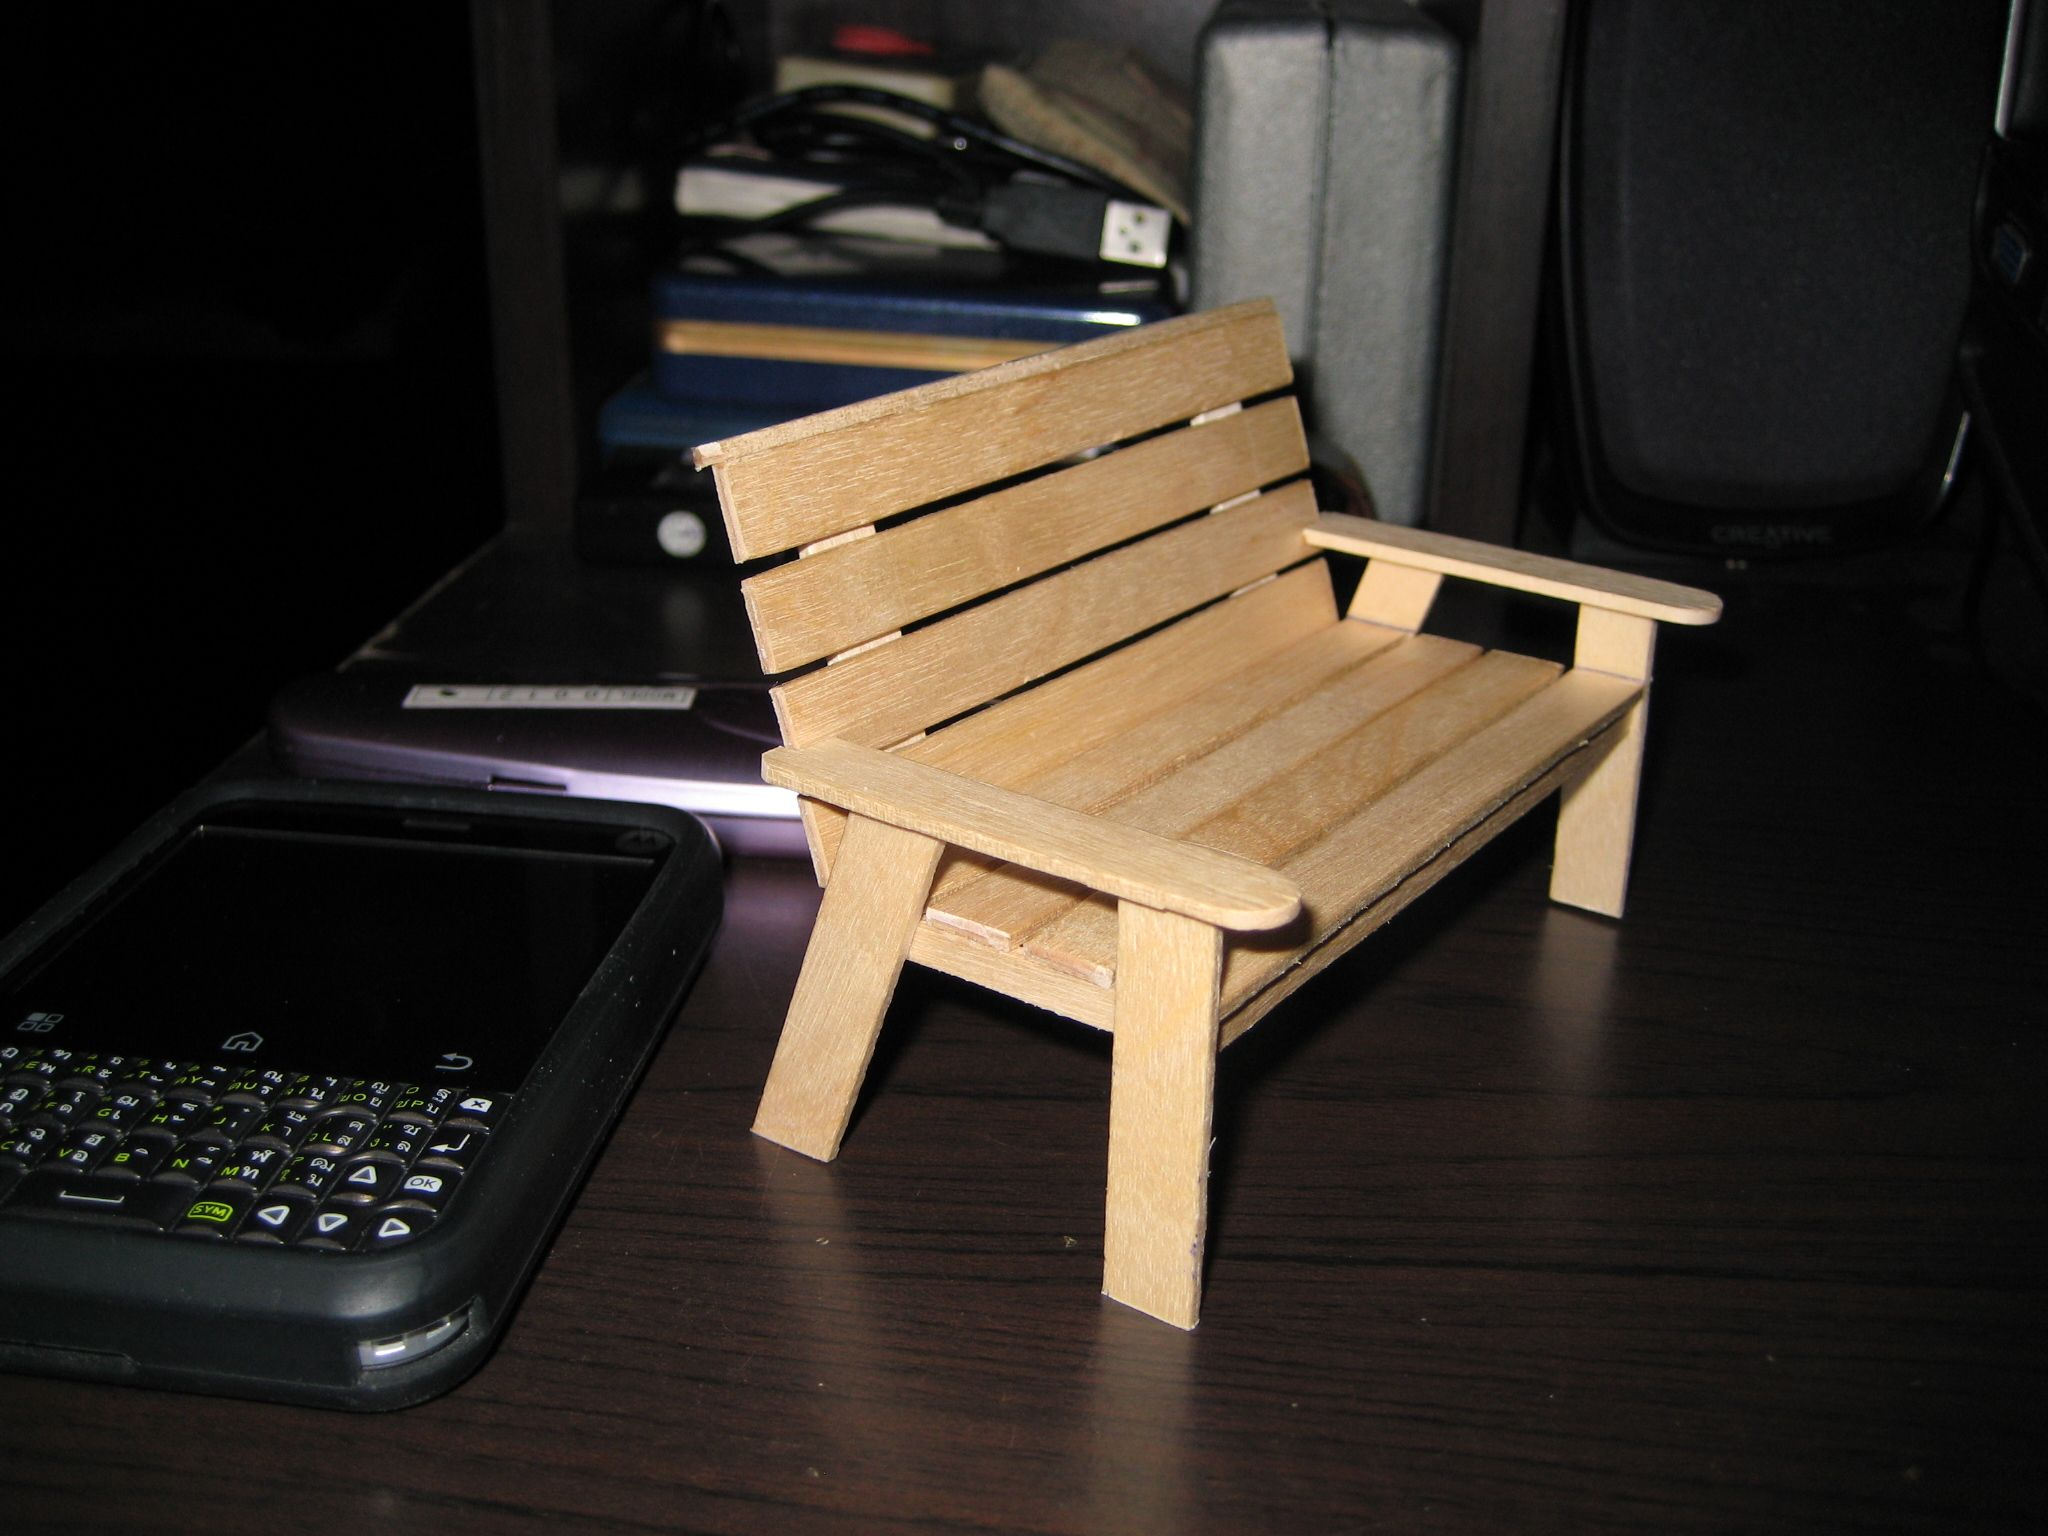 Long wooden craft sticks - My Hobby Craft Miniature Park Benches For Dolls